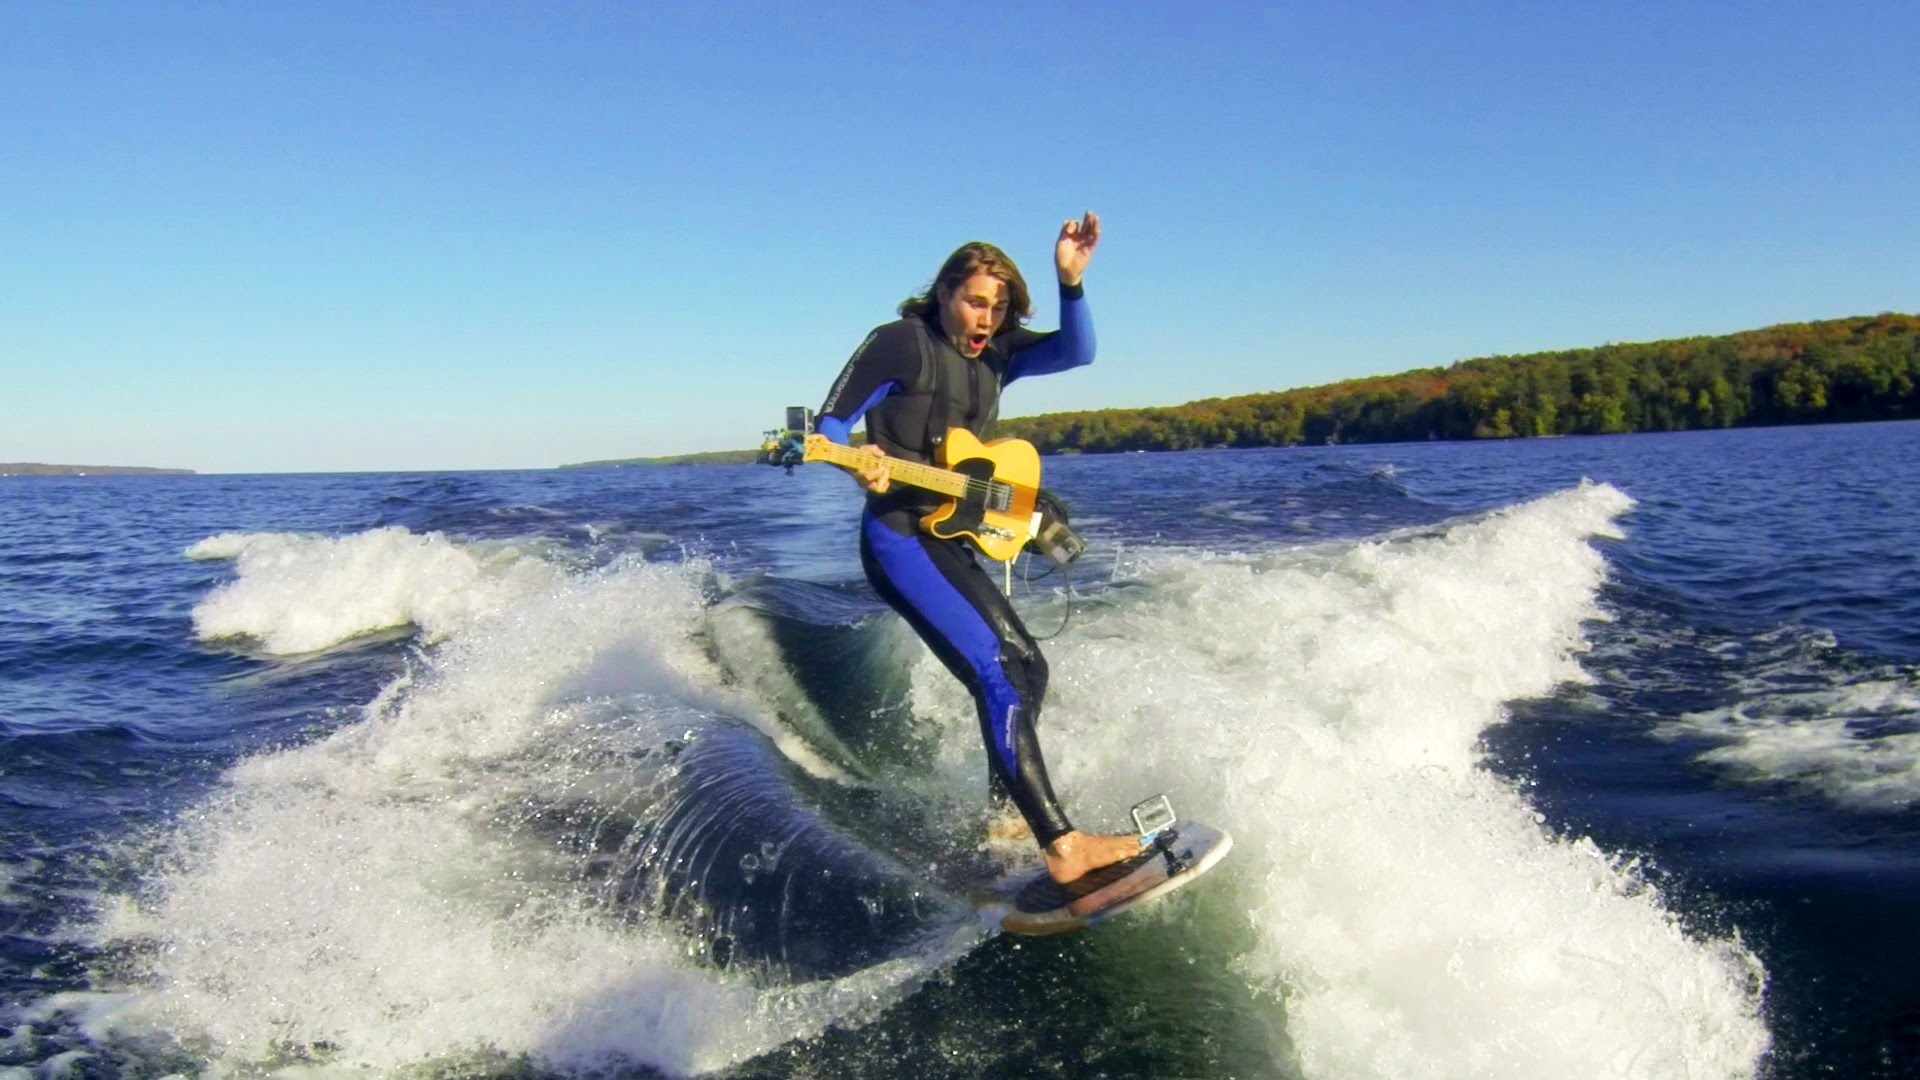 Unique Girl Wallpaper Gopro Video Of A Guitar Player Shredding While Riding A